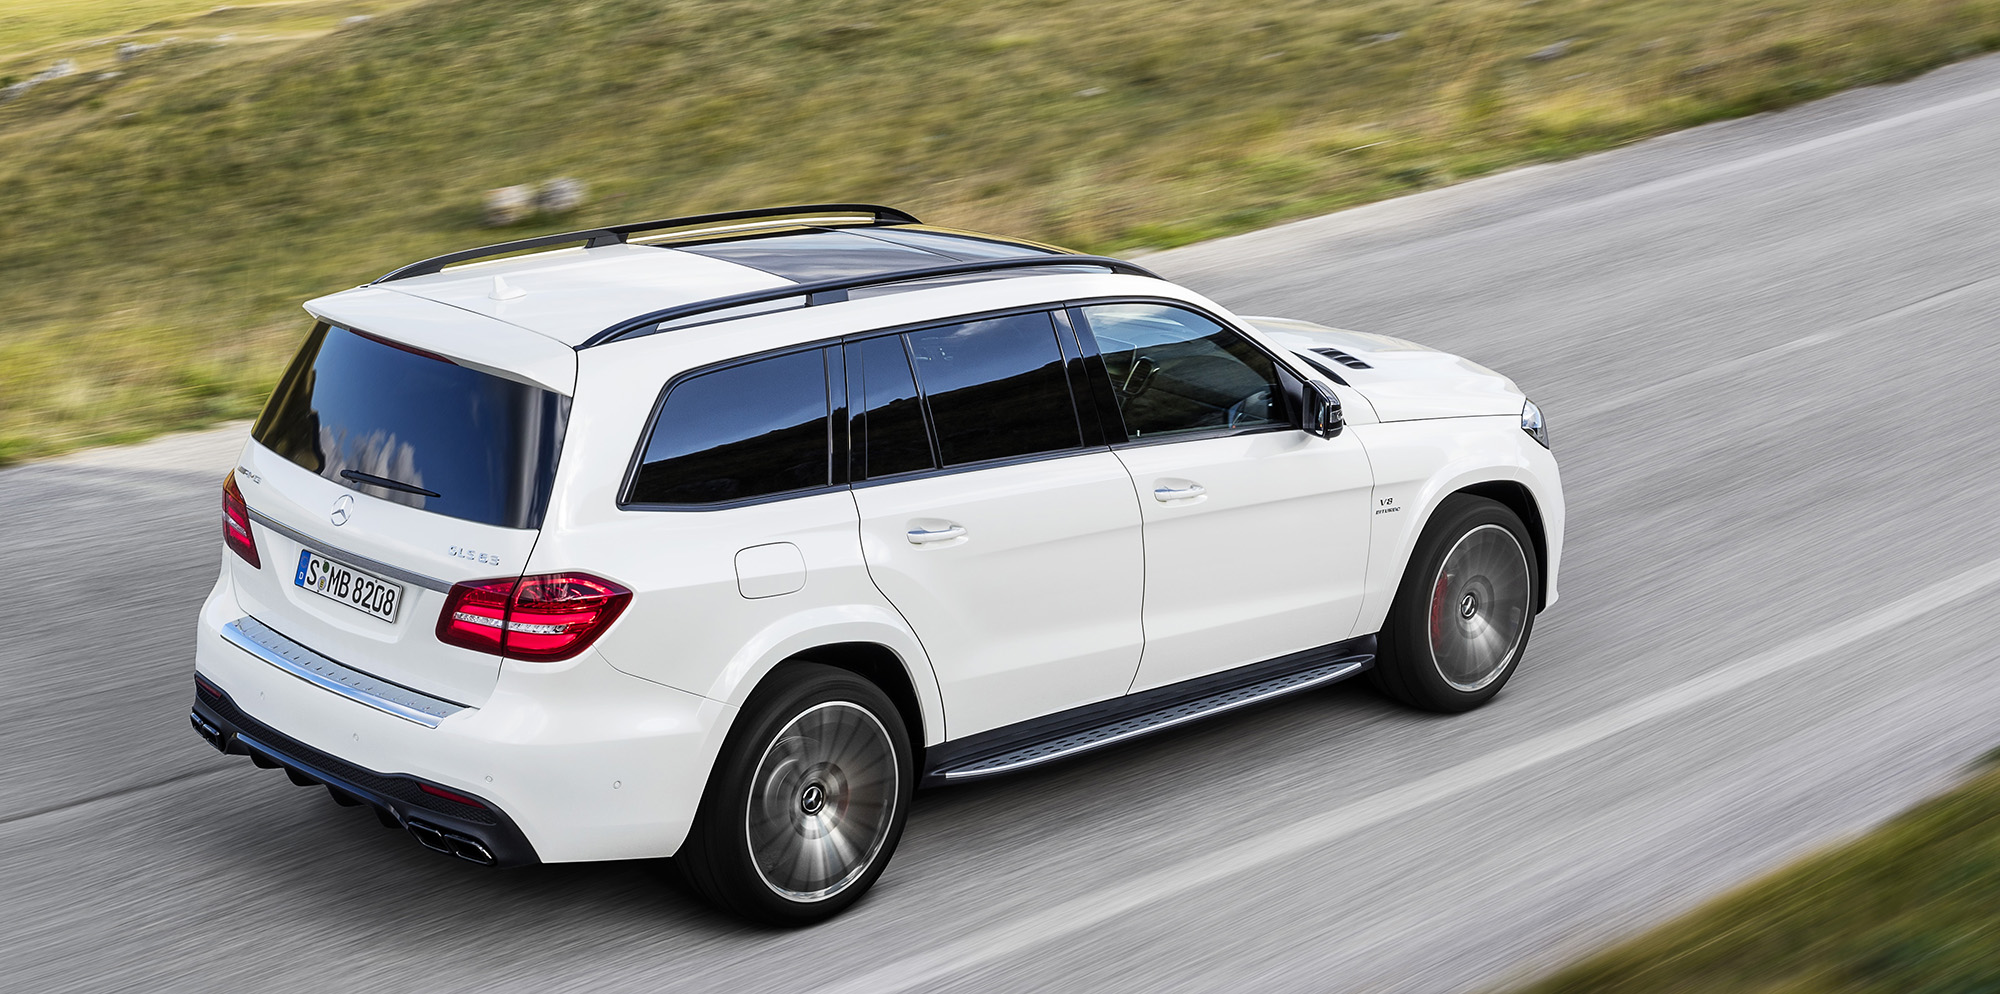 2016 MercedesBenz GLS revealed: Big GL gets new name, new look